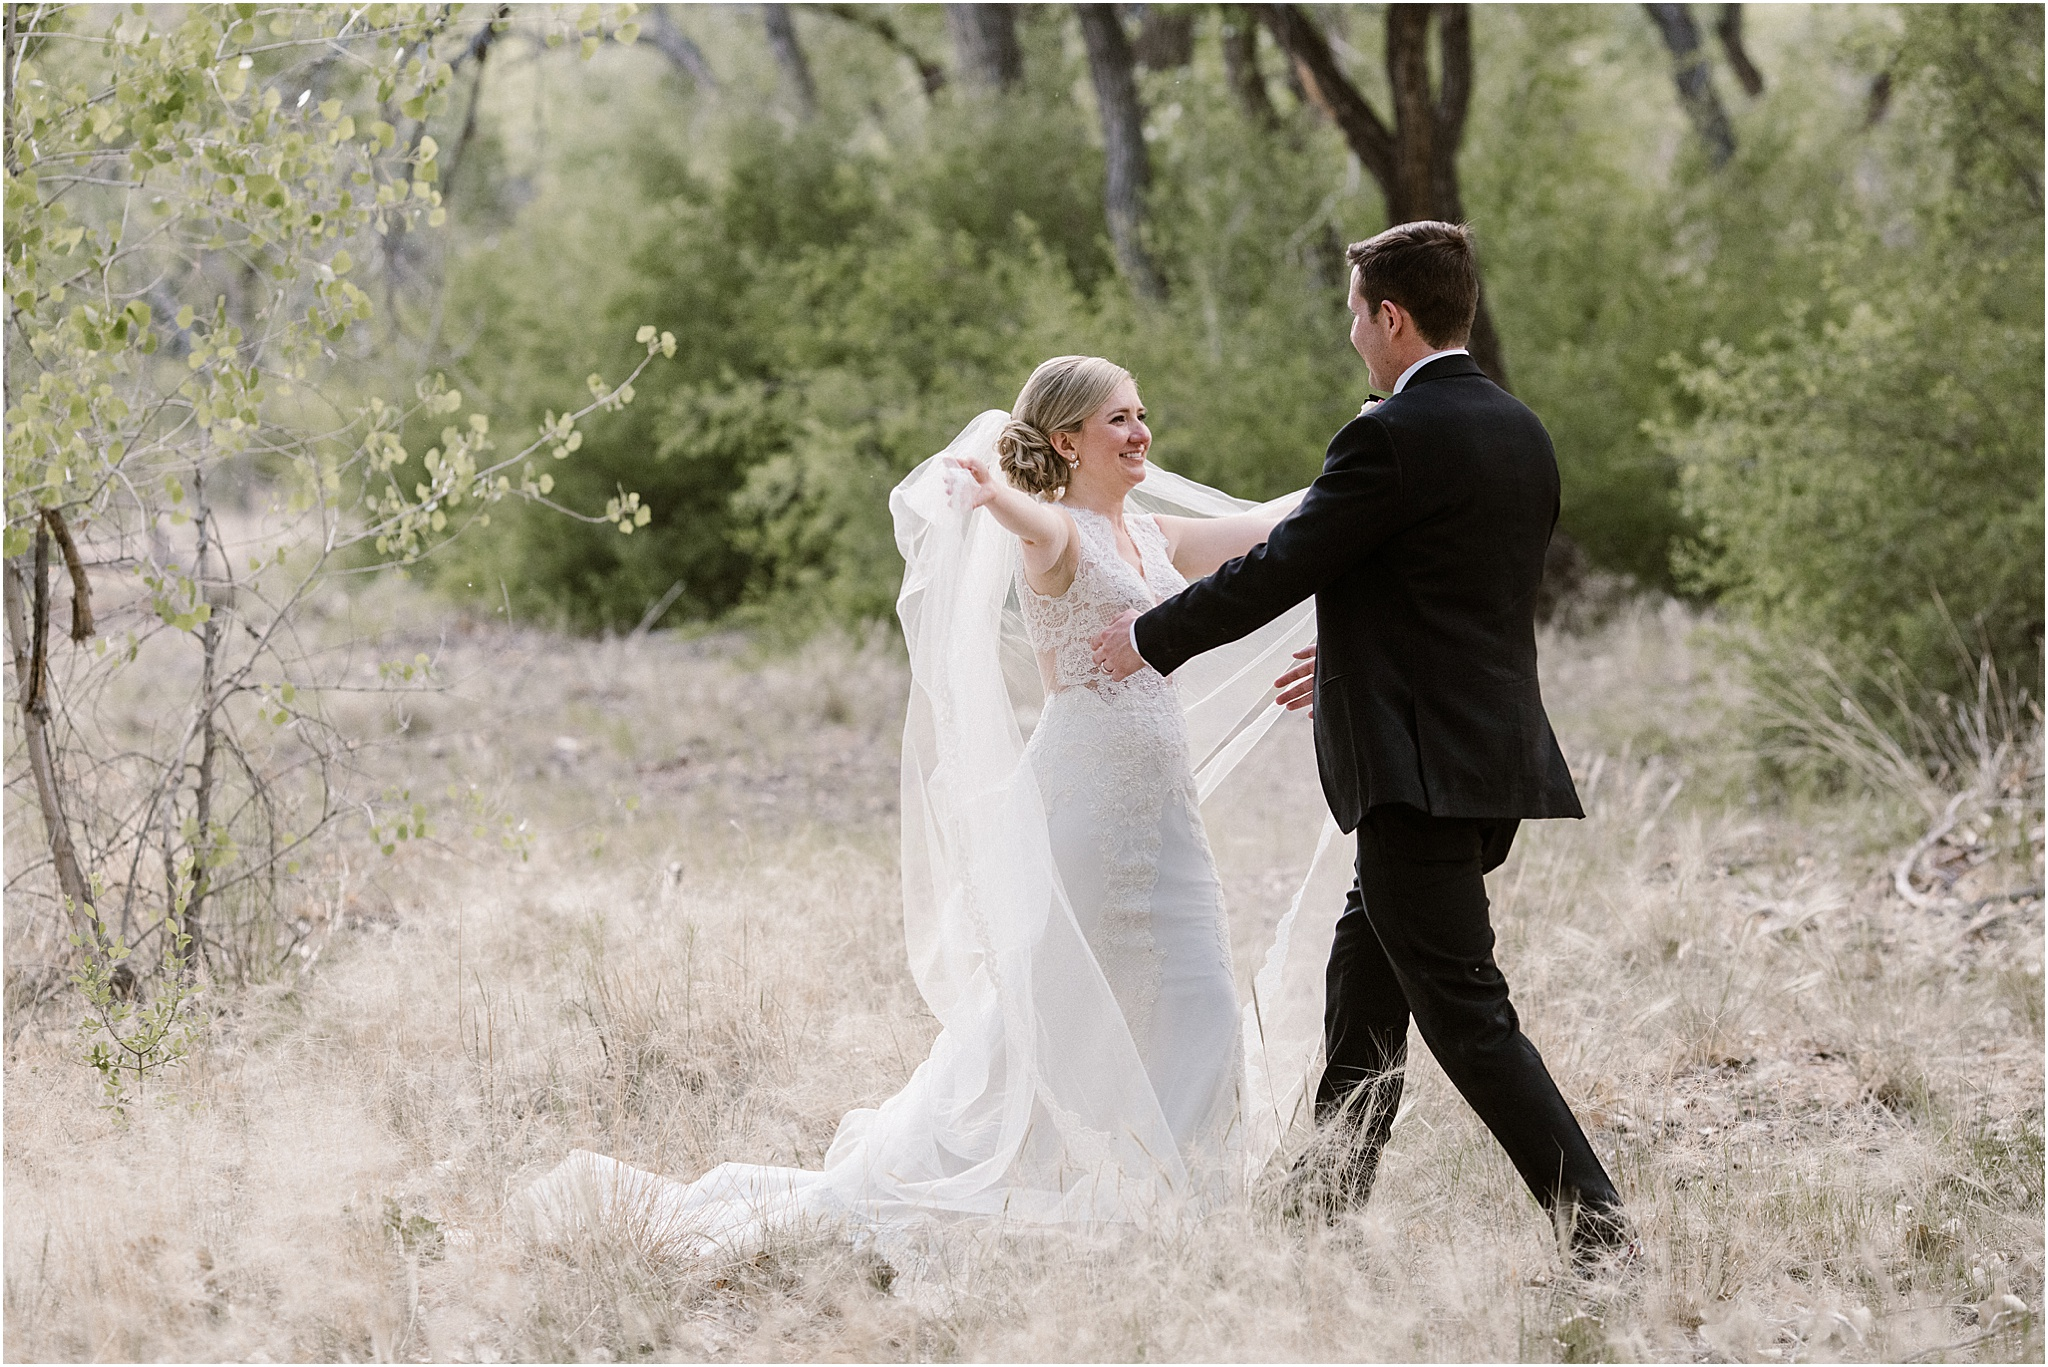 JENNA_JEROME_BLUE ROSE PHOTOGRAPHY_ABQ WEDDING_32